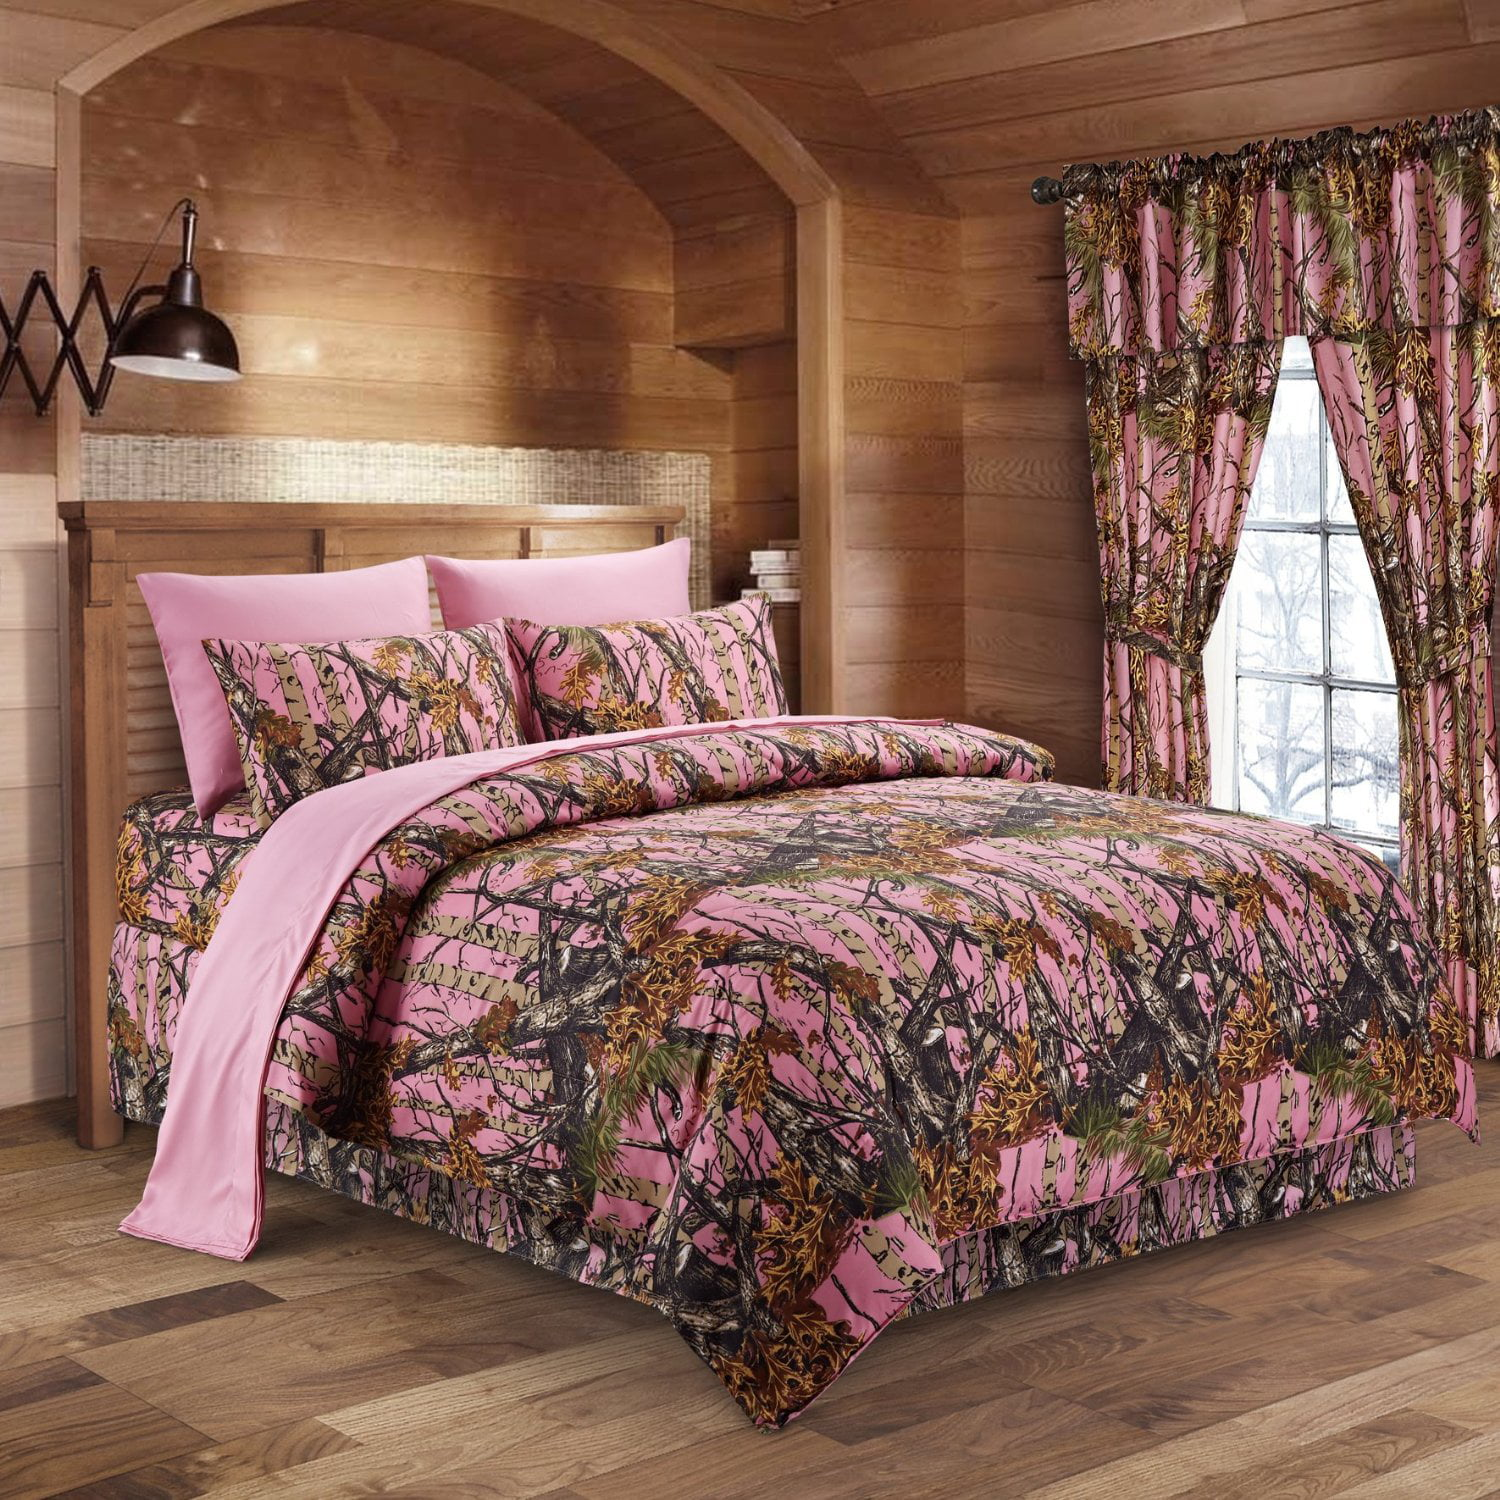 Regal Comfort 8pc Queen Size Woods Pink Camouflage Premium Comforter, SHeet, Pillowcases, and Bedskirt Set... by Regal Comfort